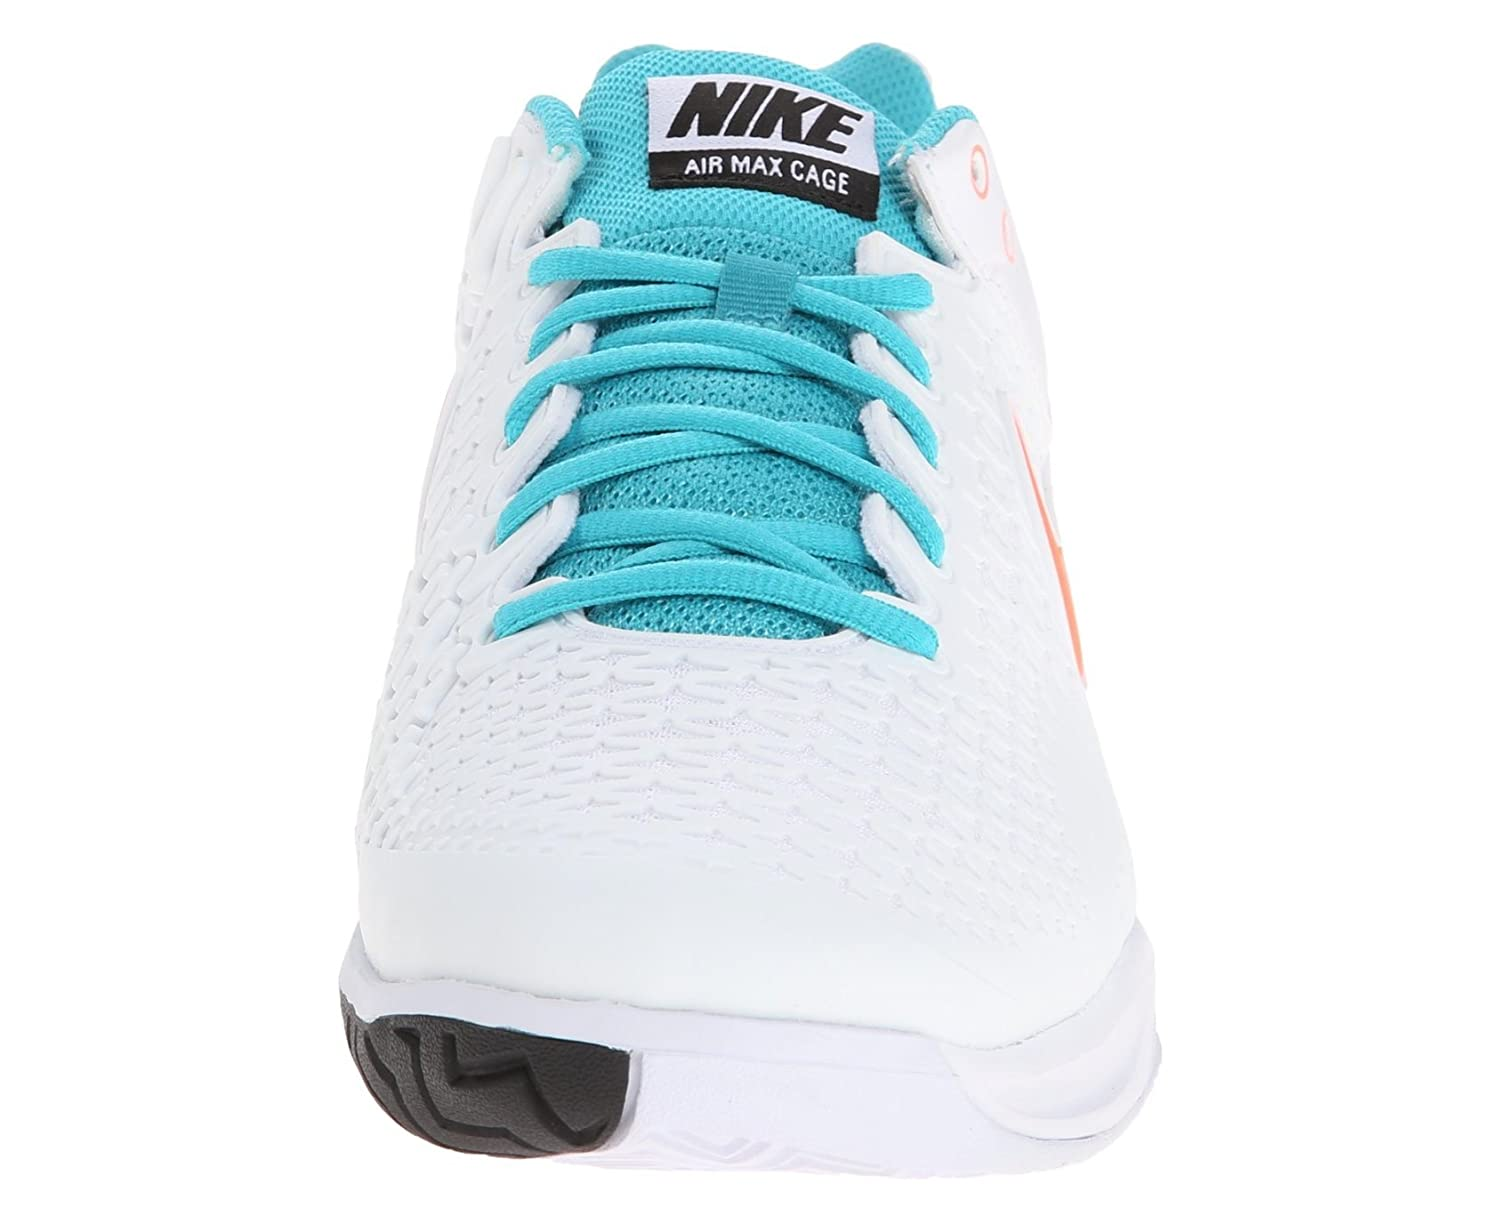 the latest 73012 54789 Amazon.com   Nike Men s Air Max Cage Tennis Shoes (6, White Hyper  Crimson-Dusty Cactus)   Skateboarding